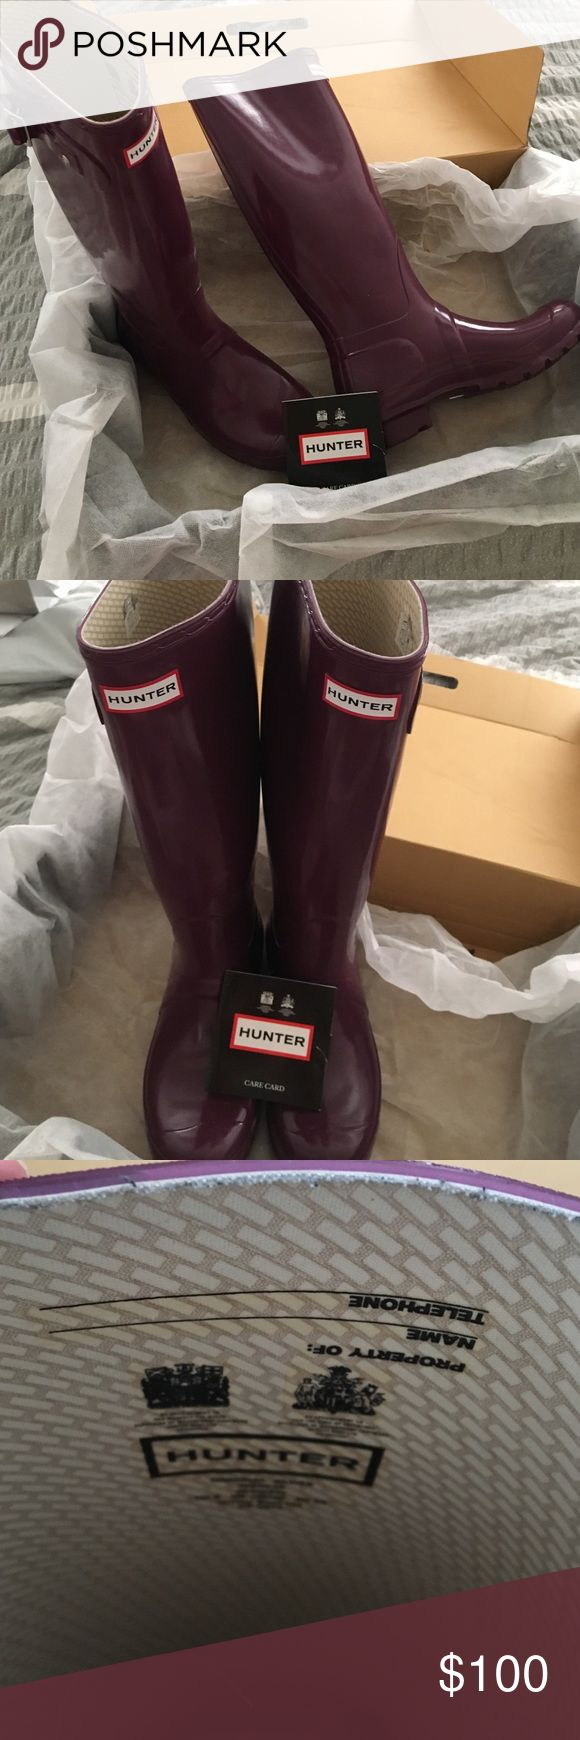 "Hunter Rain Boots Mint Condition Purple (""Dark Ruby"") Hunter Rain Boots. Worn twice and stored in original box for safe keeping. Size 7M. Hunter Boots Shoes Winter & Rain Boots"